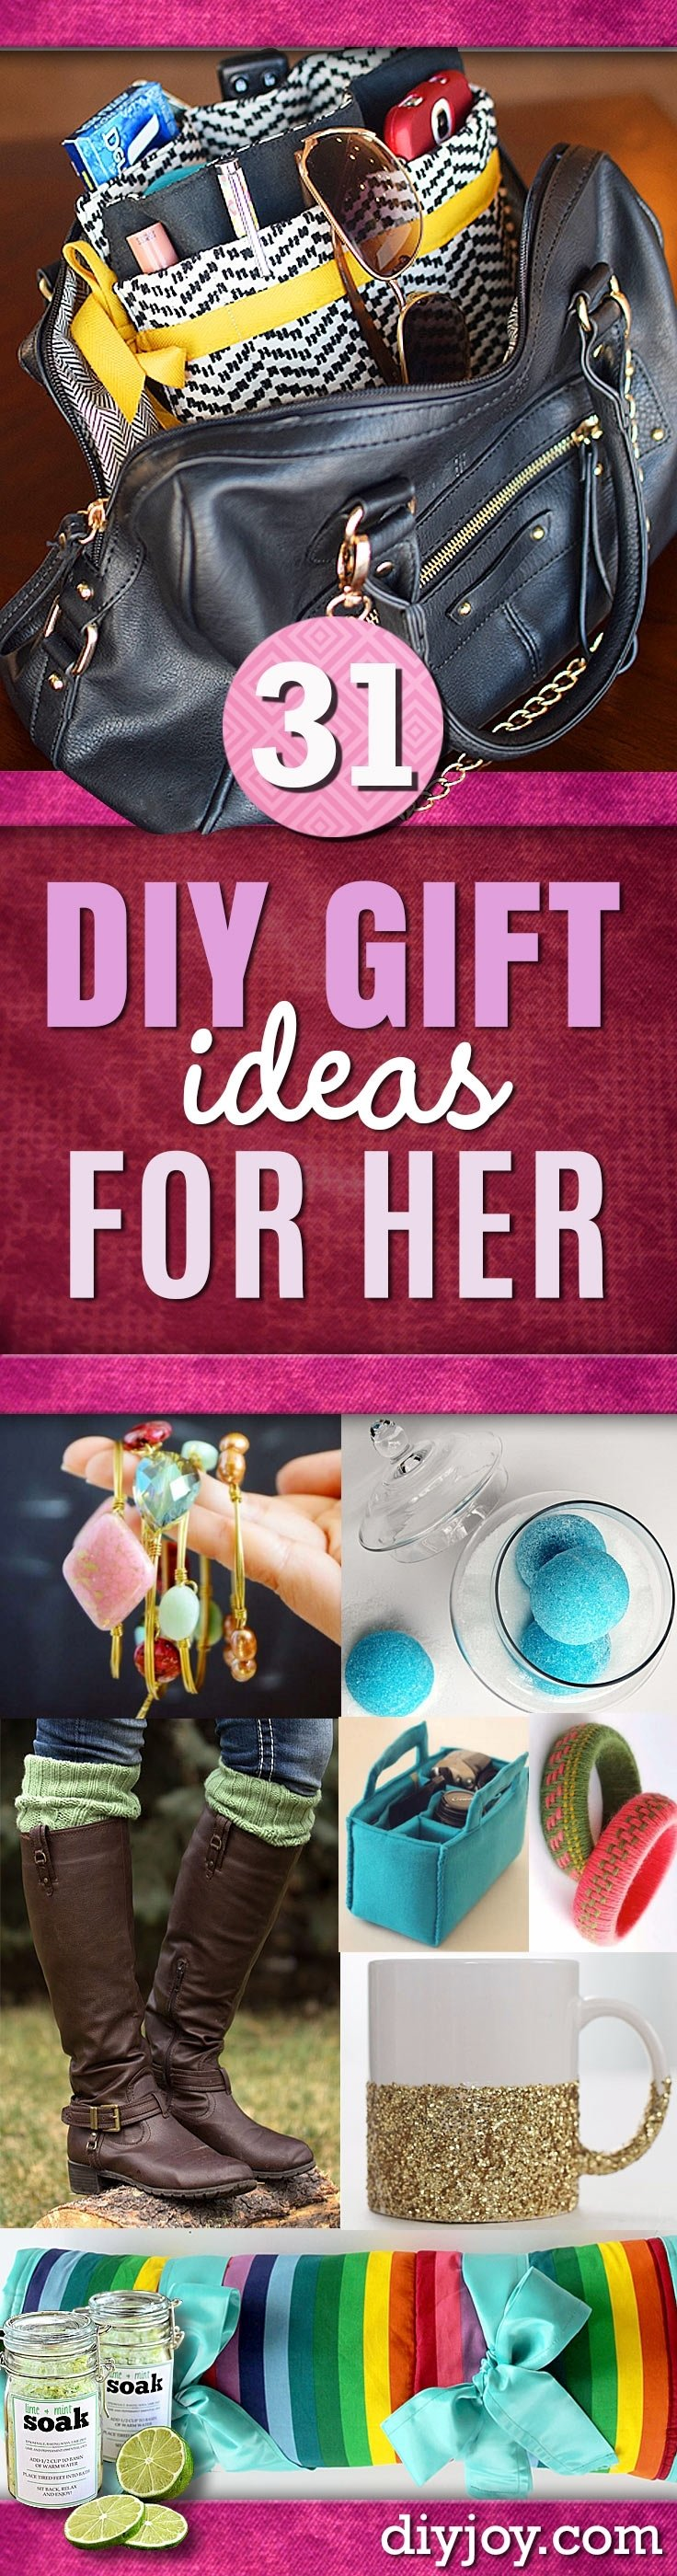 10 Best Homemade Christmas Gift Ideas For Girlfriend super special diy gift ideas for her 2020